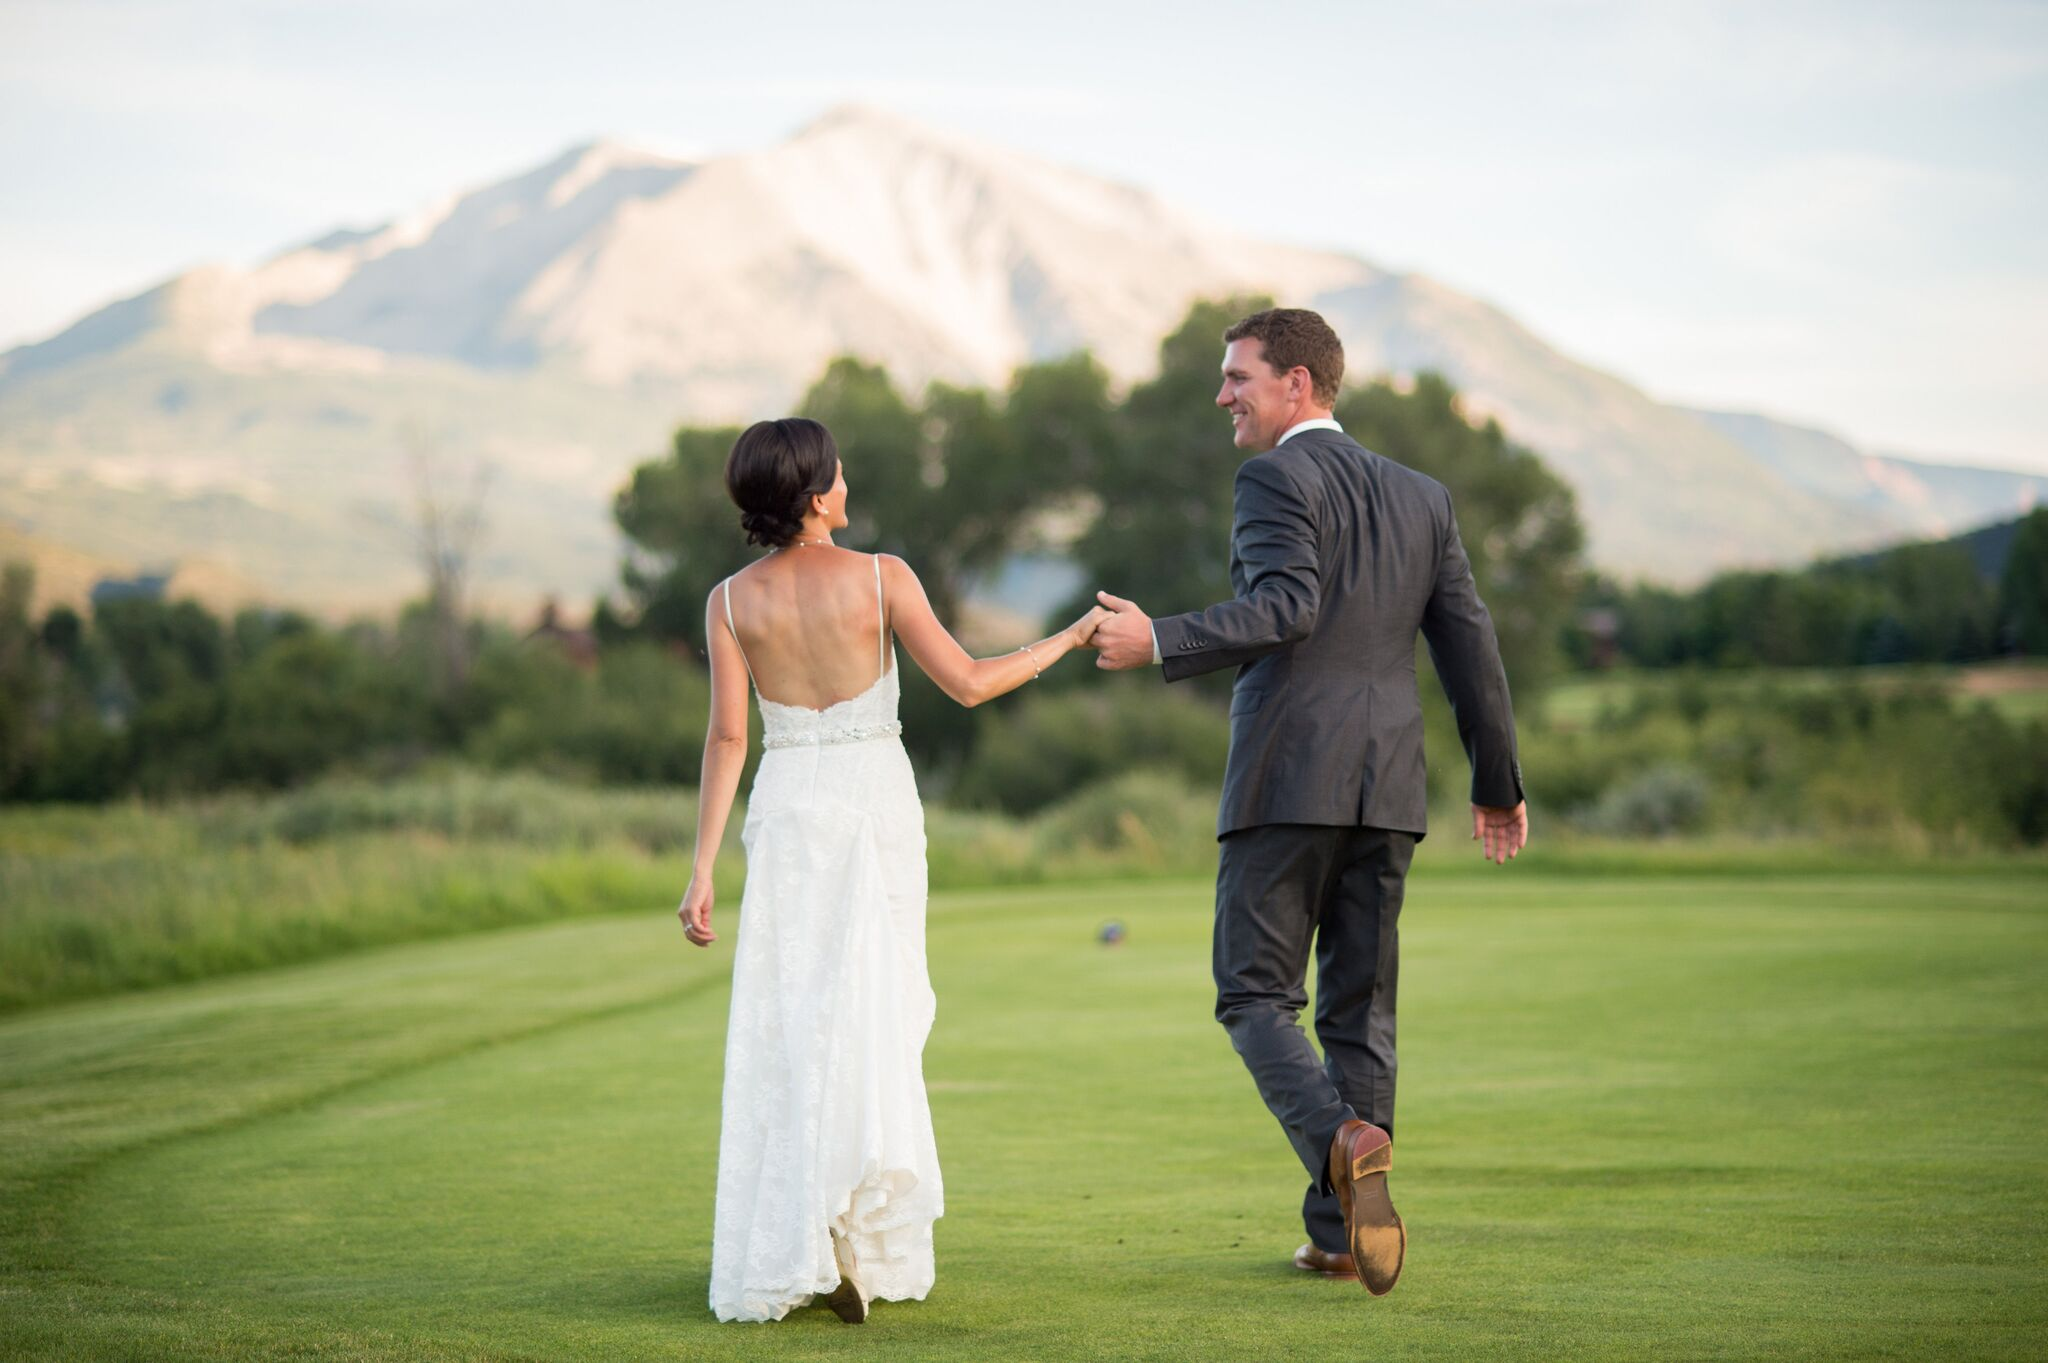 We Travel Well - With years of Destination Wedding experience, we can create an event with any visions you may have, in any location, near or far!